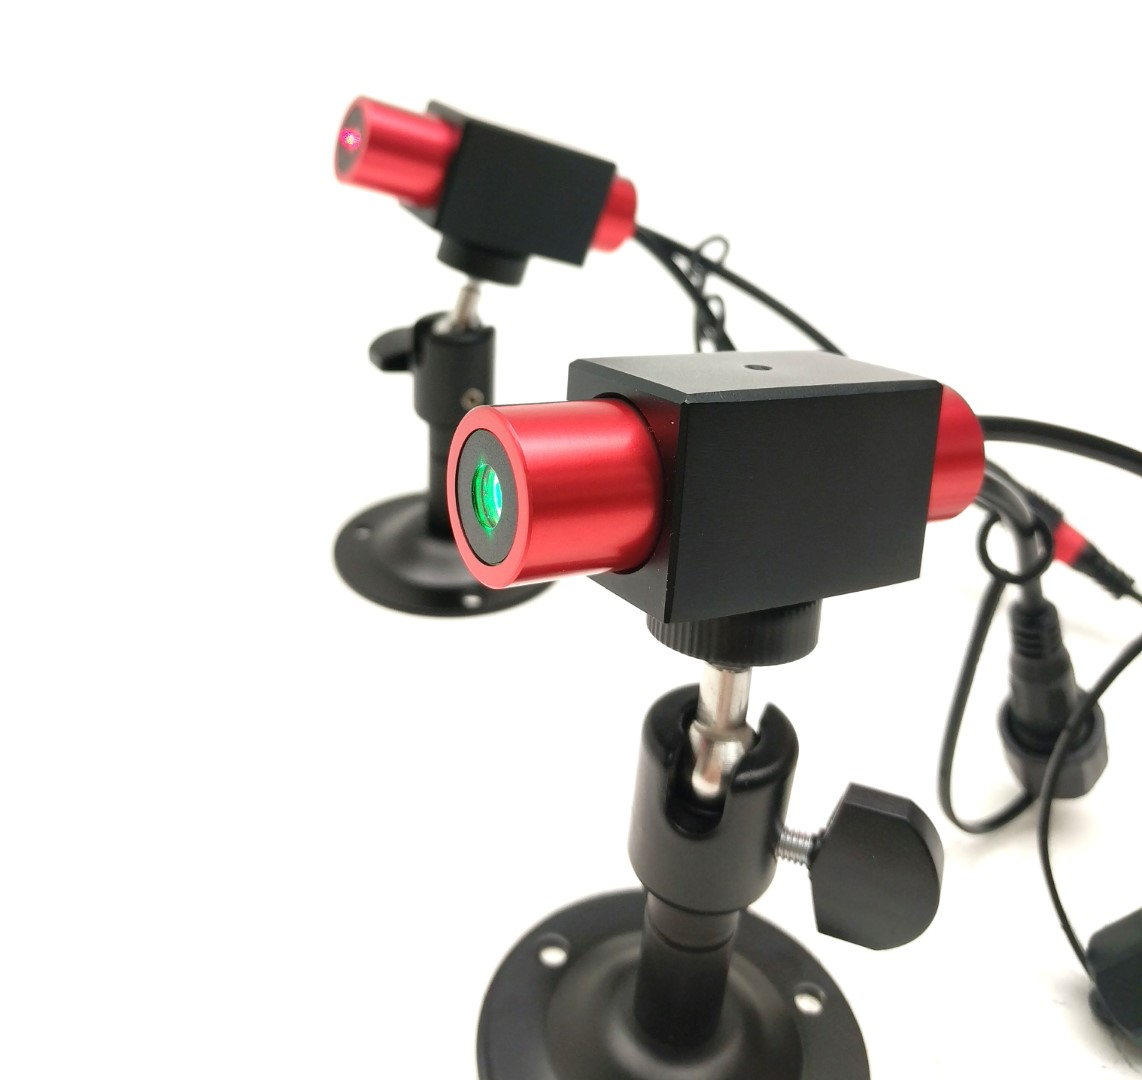 5 mW 635 nm Red Premium Structured Line Laser, 5° fan angle, adjustable focus, TTL+, Sealed IP67